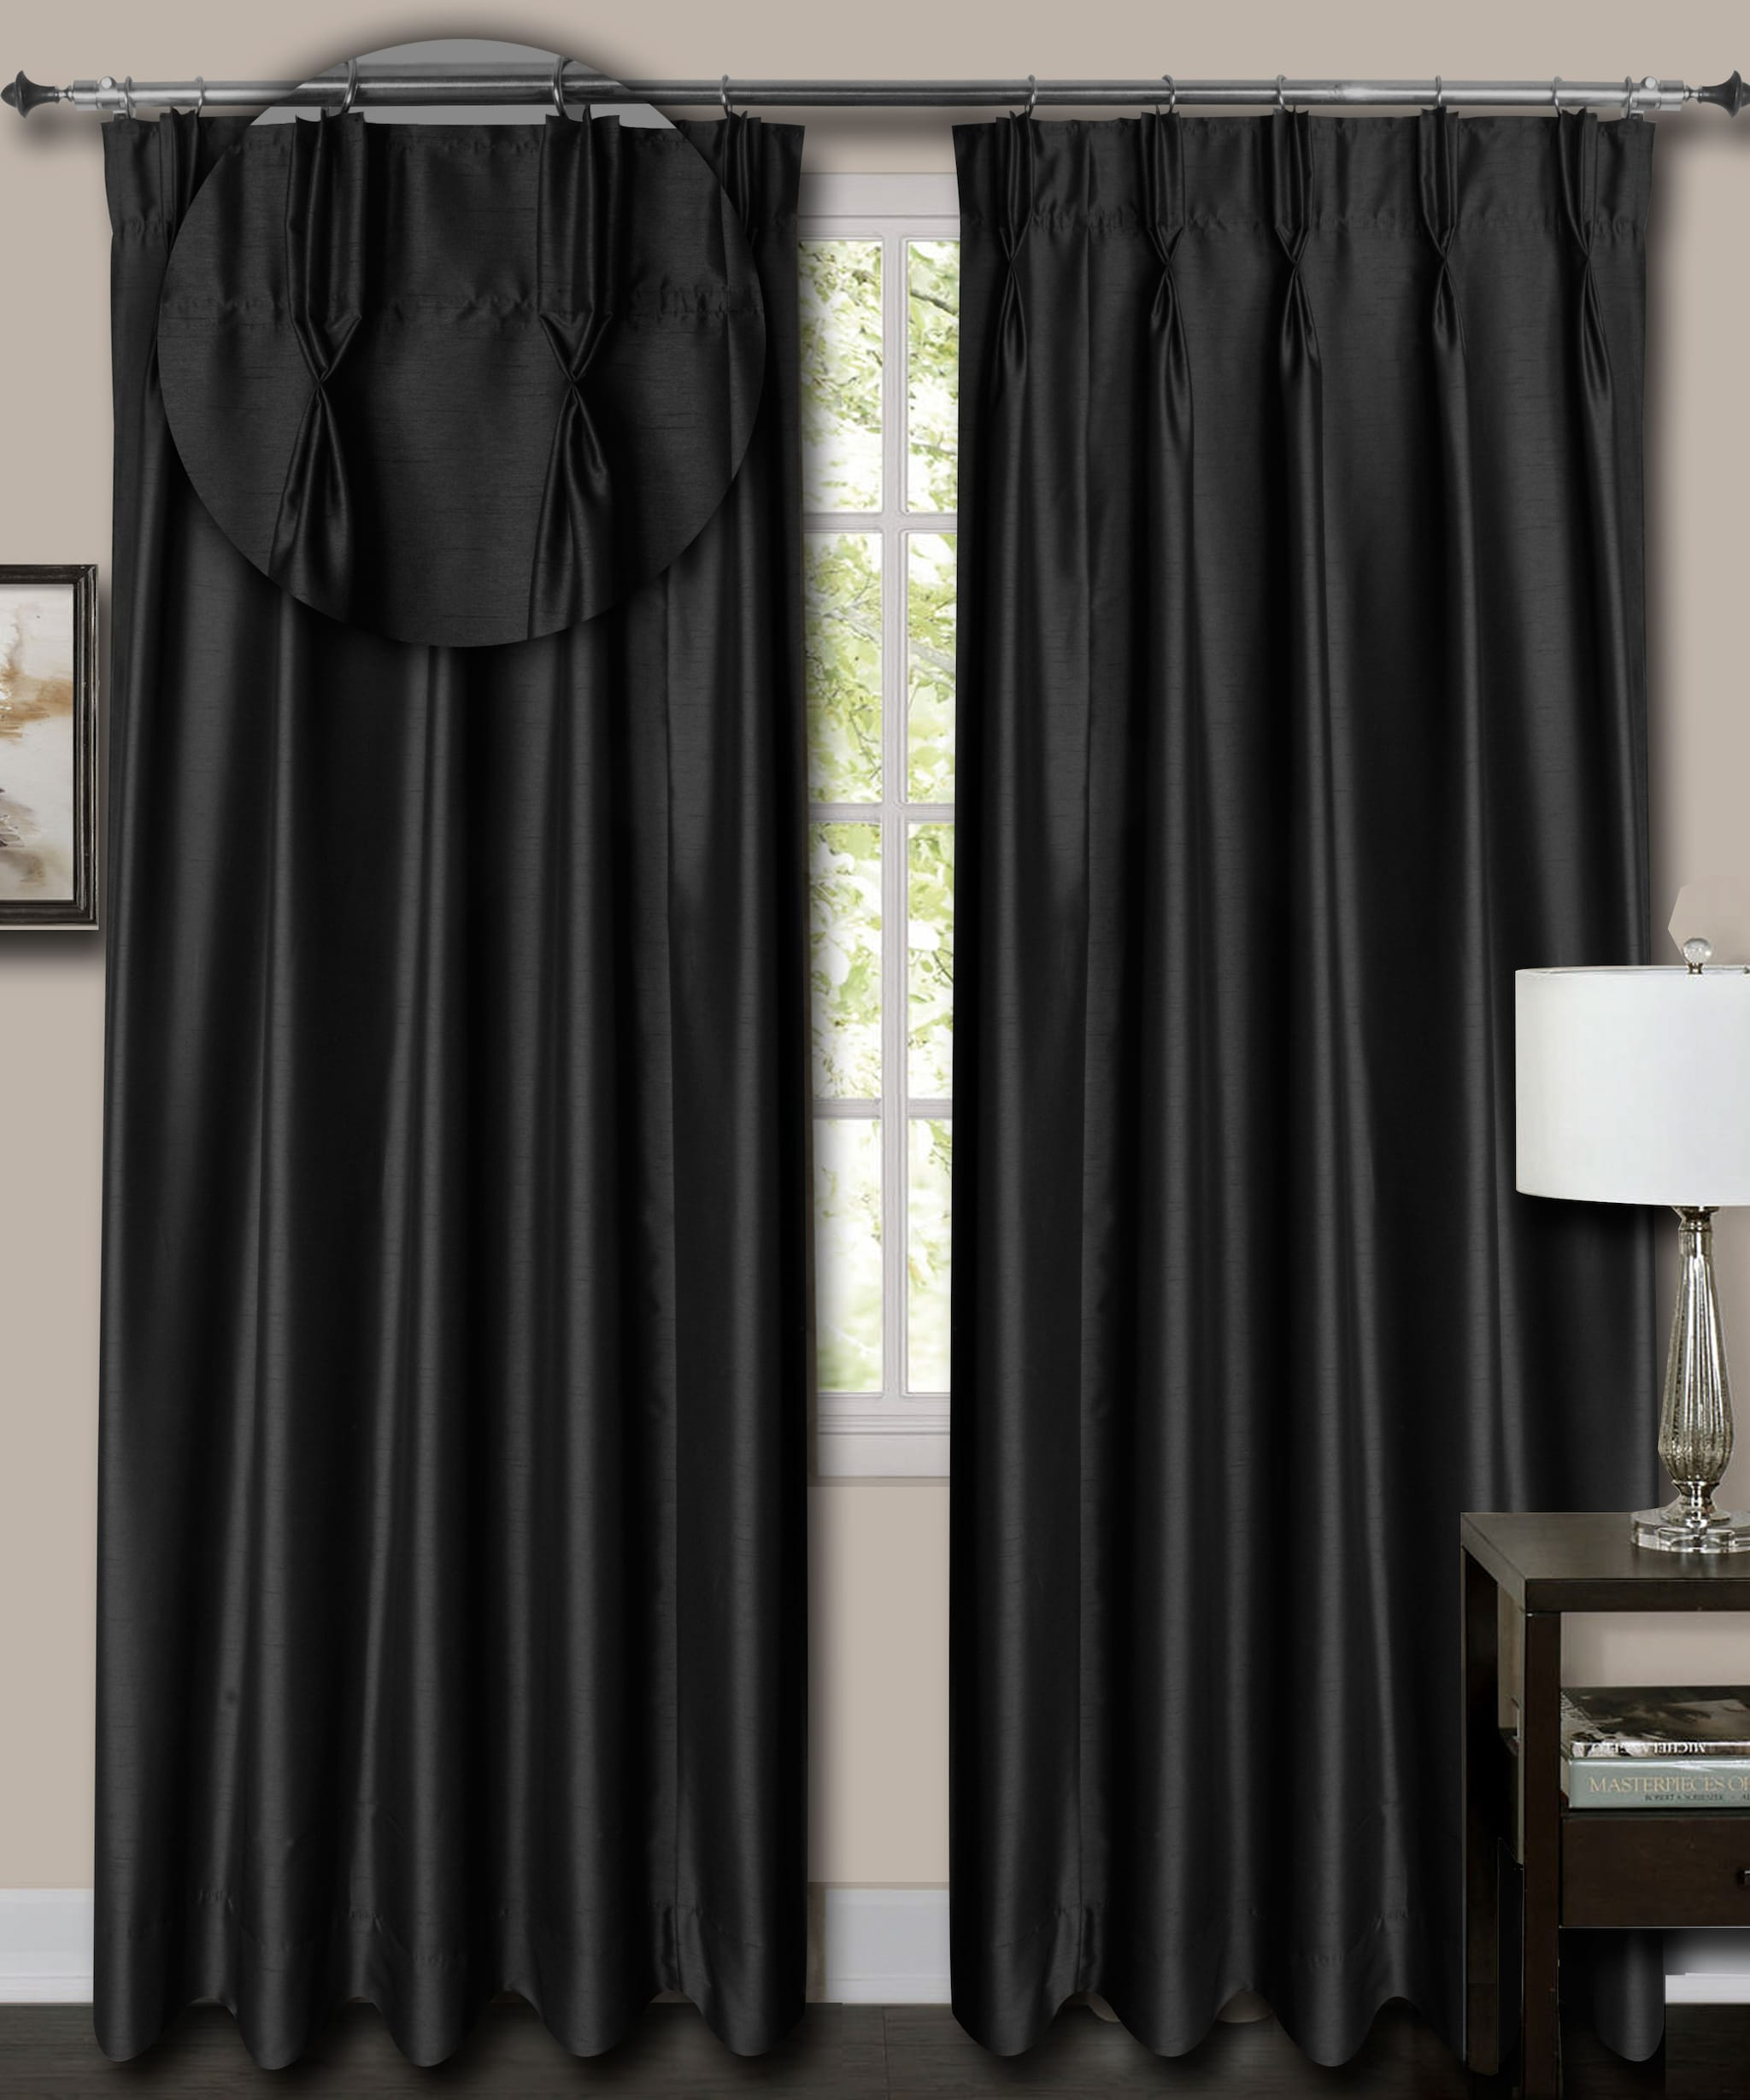 "French Pleat Top Black Faux Silk Dupioni Curtains. (78"" Wide,14 Feet Long,Blackout Lining)"